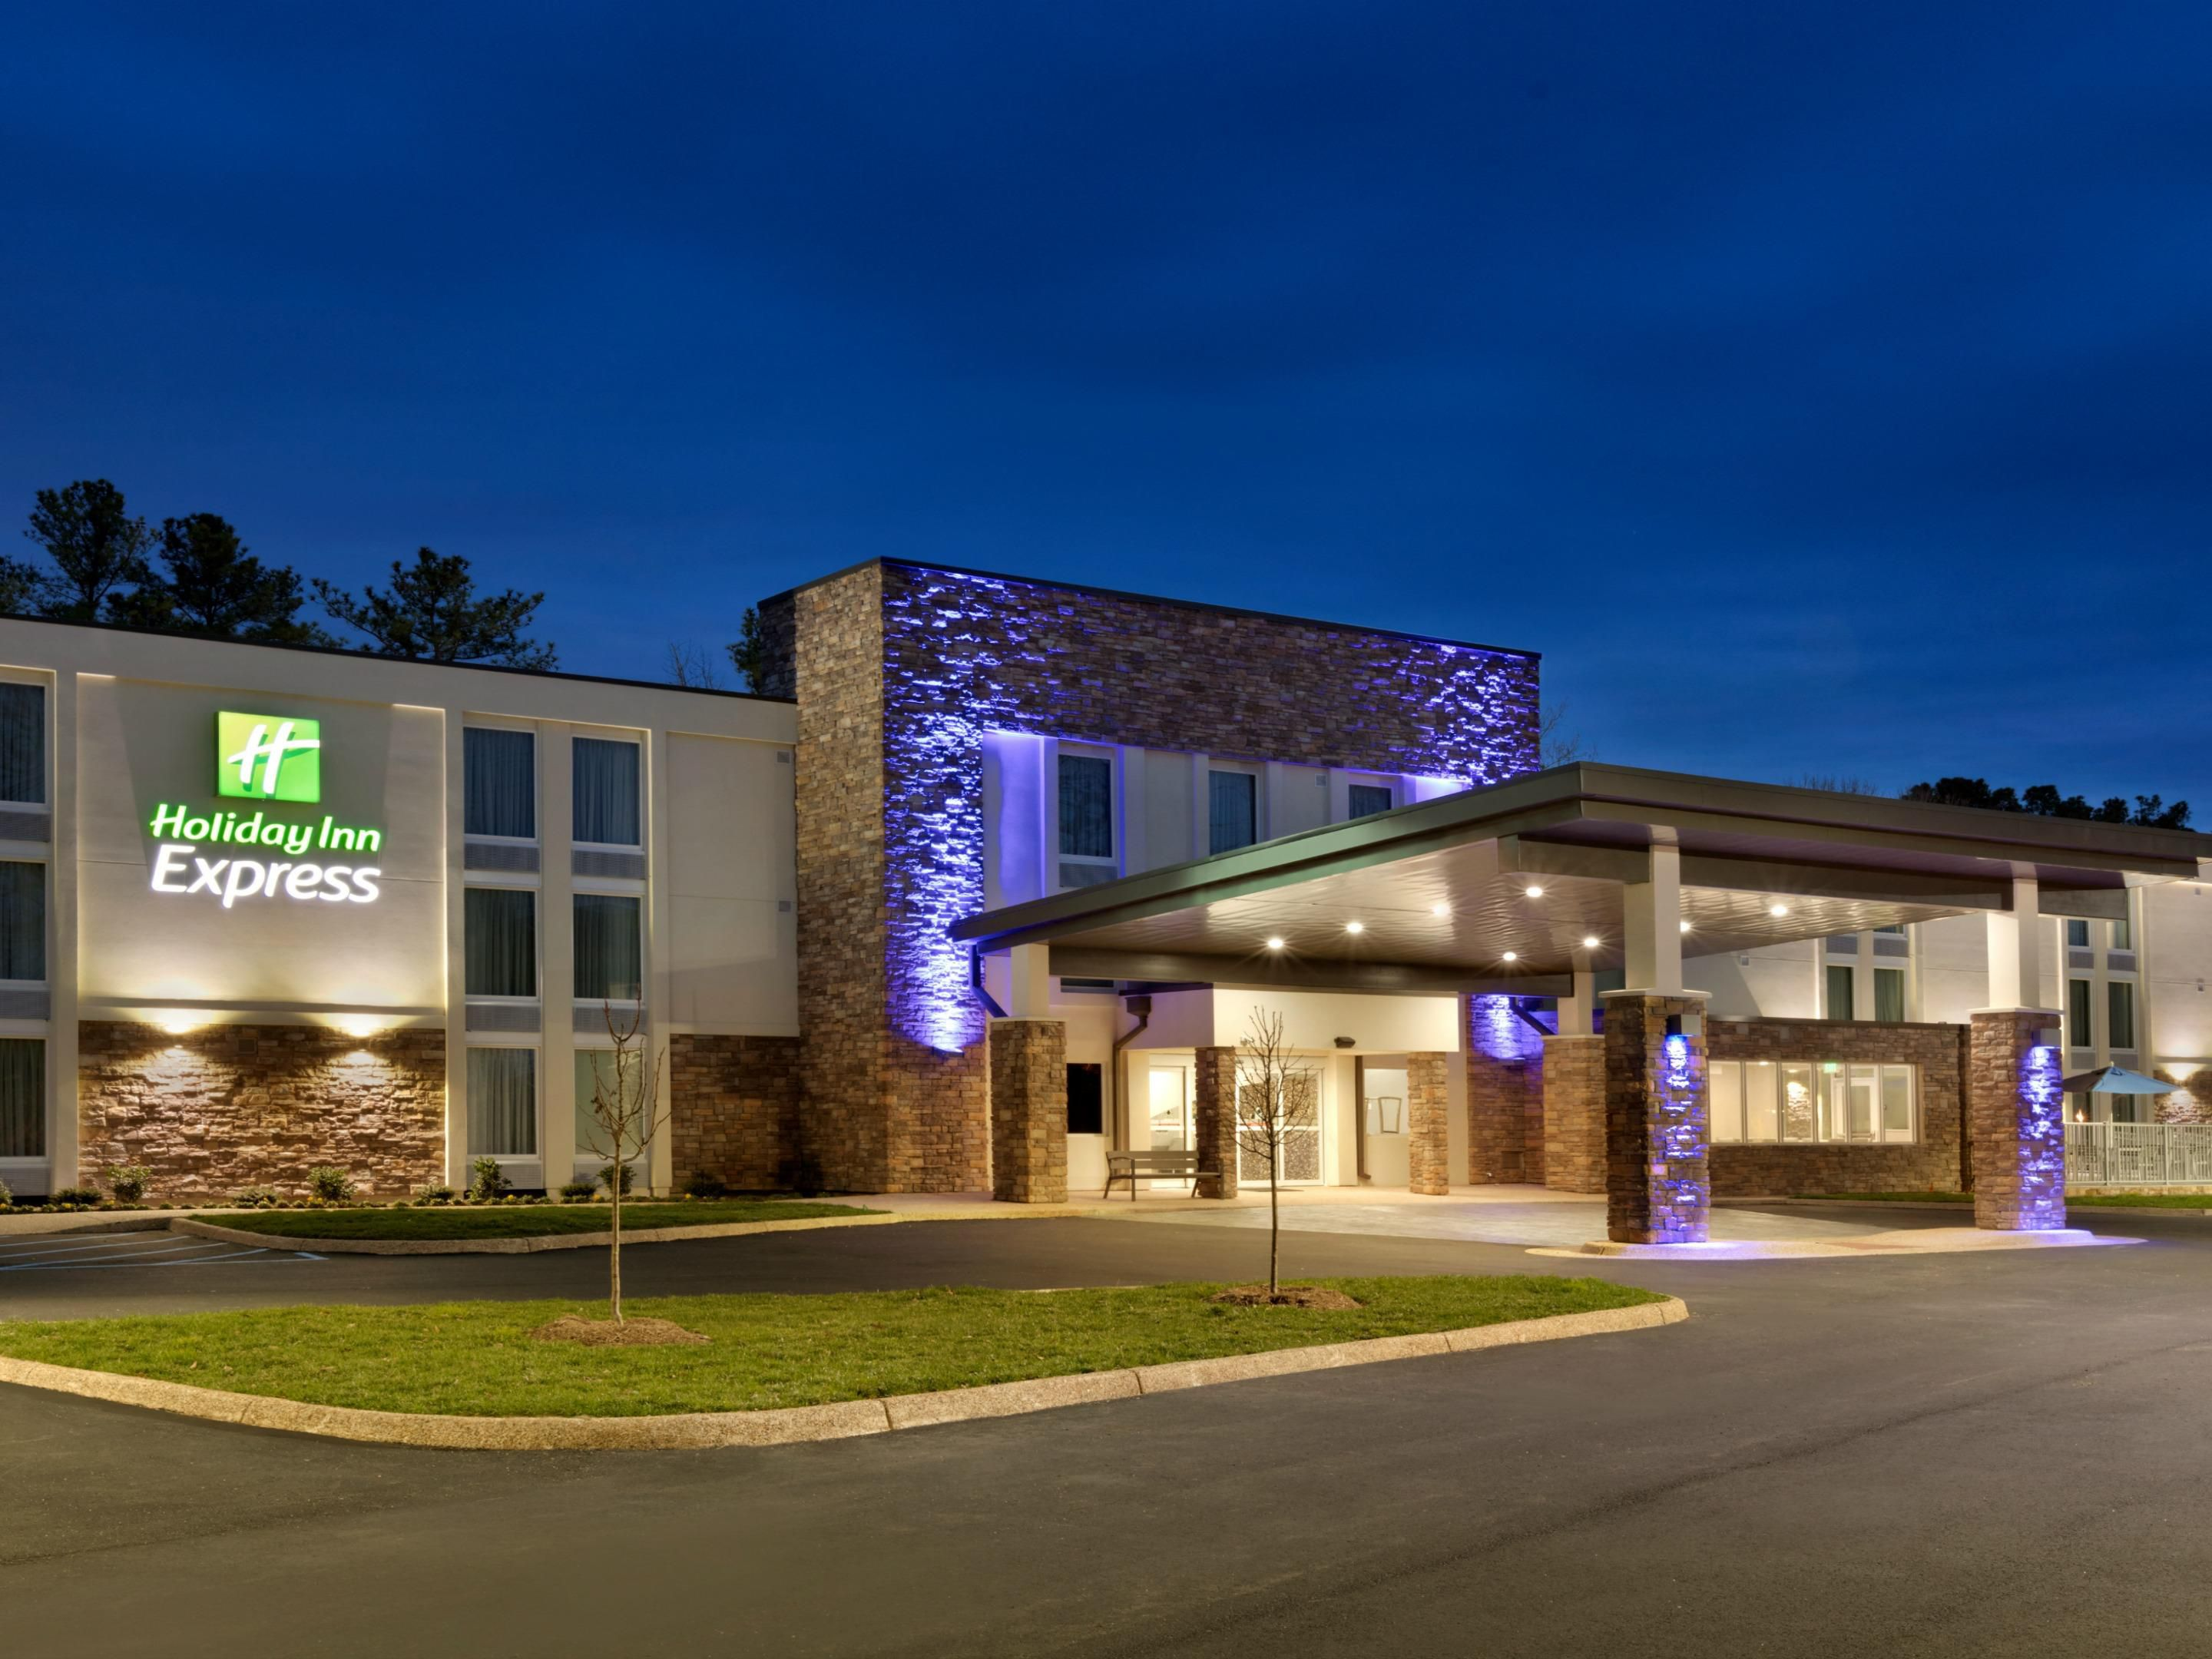 Holiday Inn Express Williamsbrg Busch Gardens Area Hotel Reviews Photos